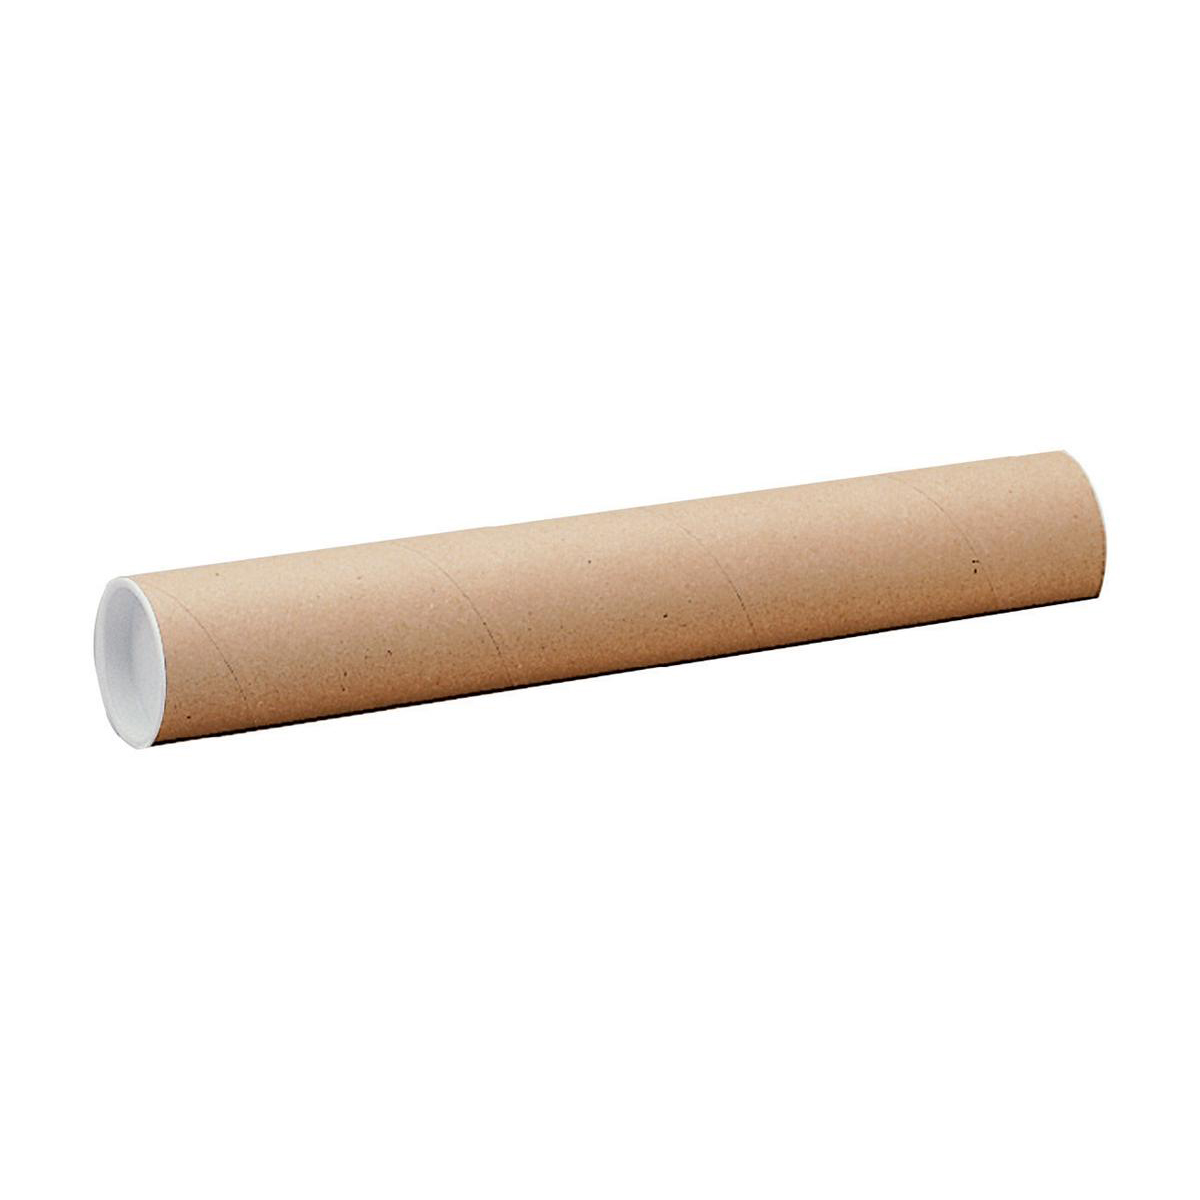 Postal Tube Cardboard with Plastic End Caps A2 L450xDia.50mm RBL10519  Pack 25